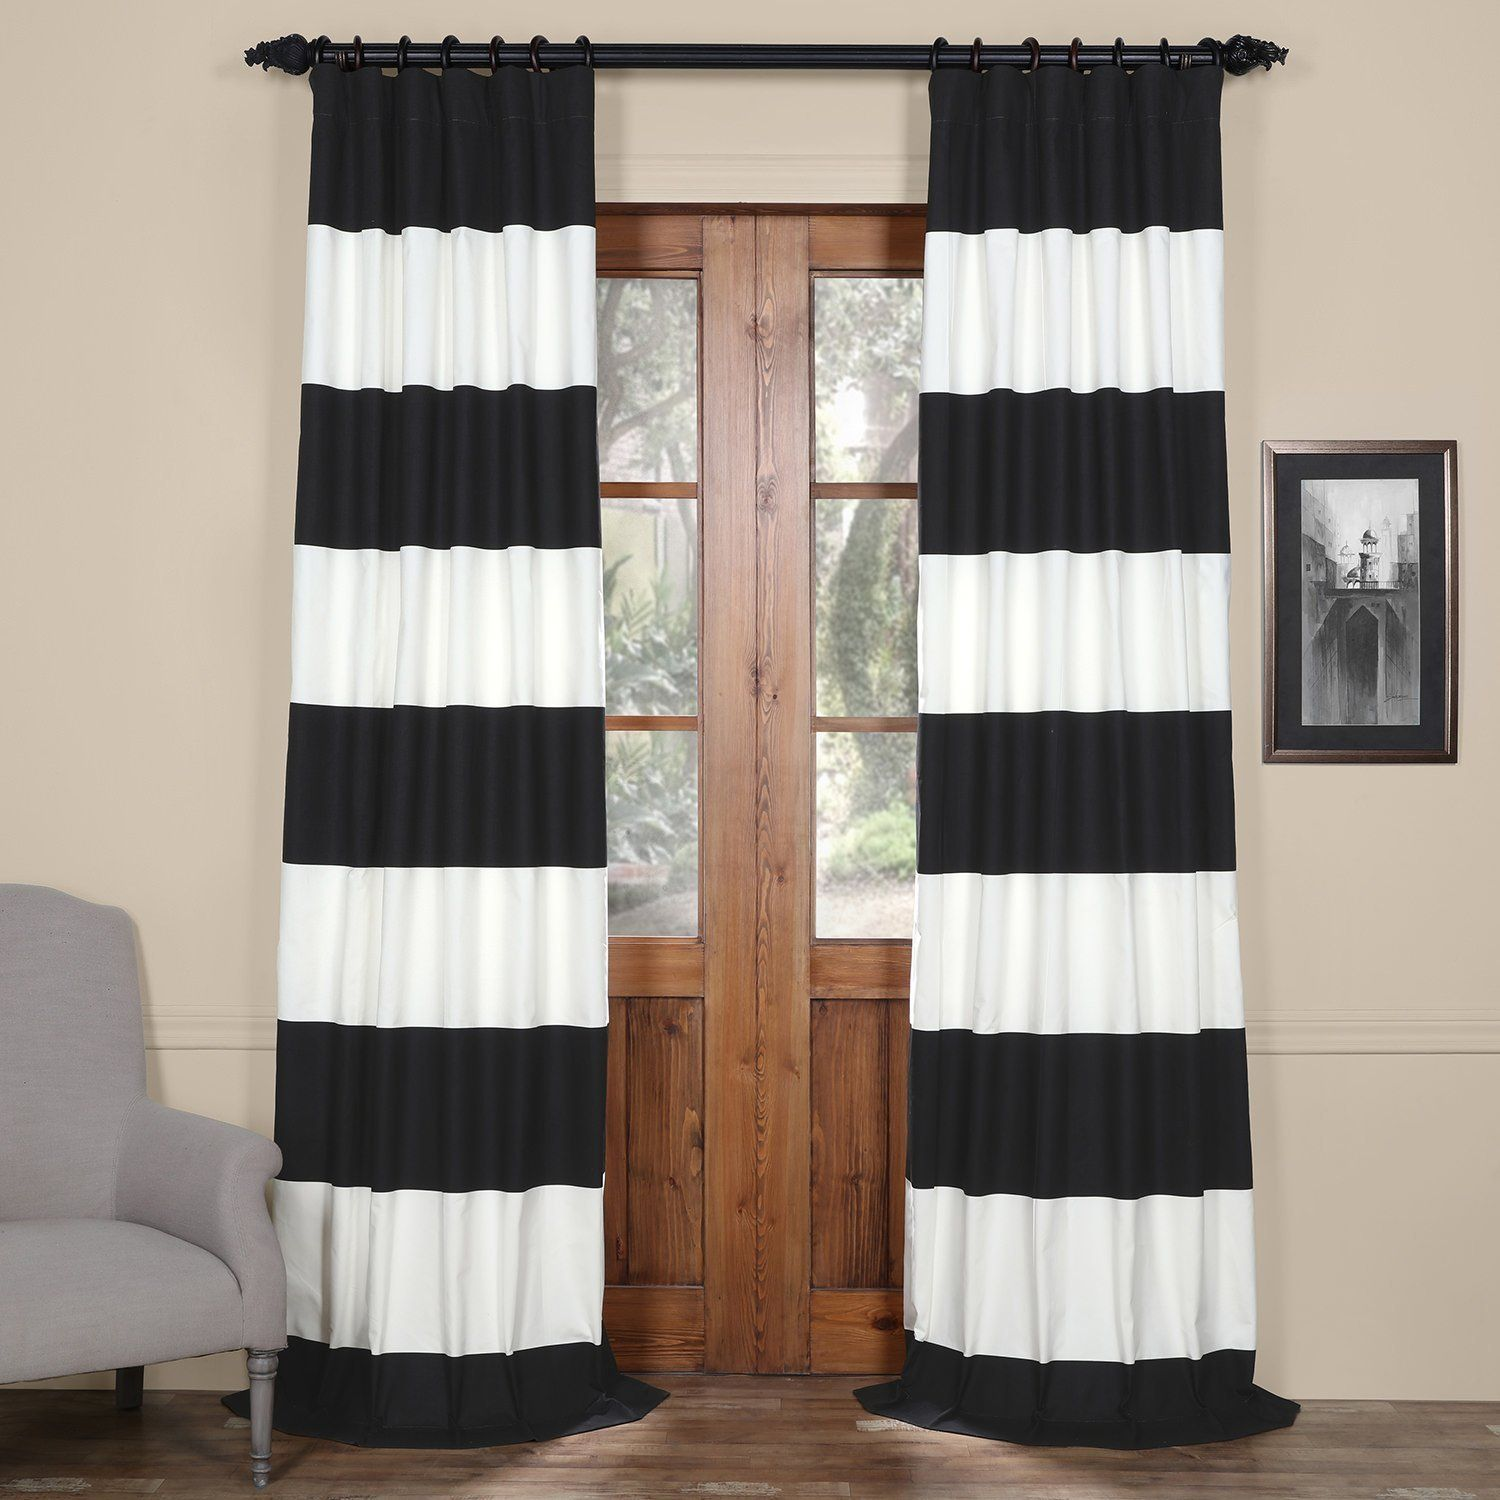 on best curtainswhite lacens setsoff black and curtains photos with ideas bedroom off drapes white concept breathtaking full curtain diy size pinterest of